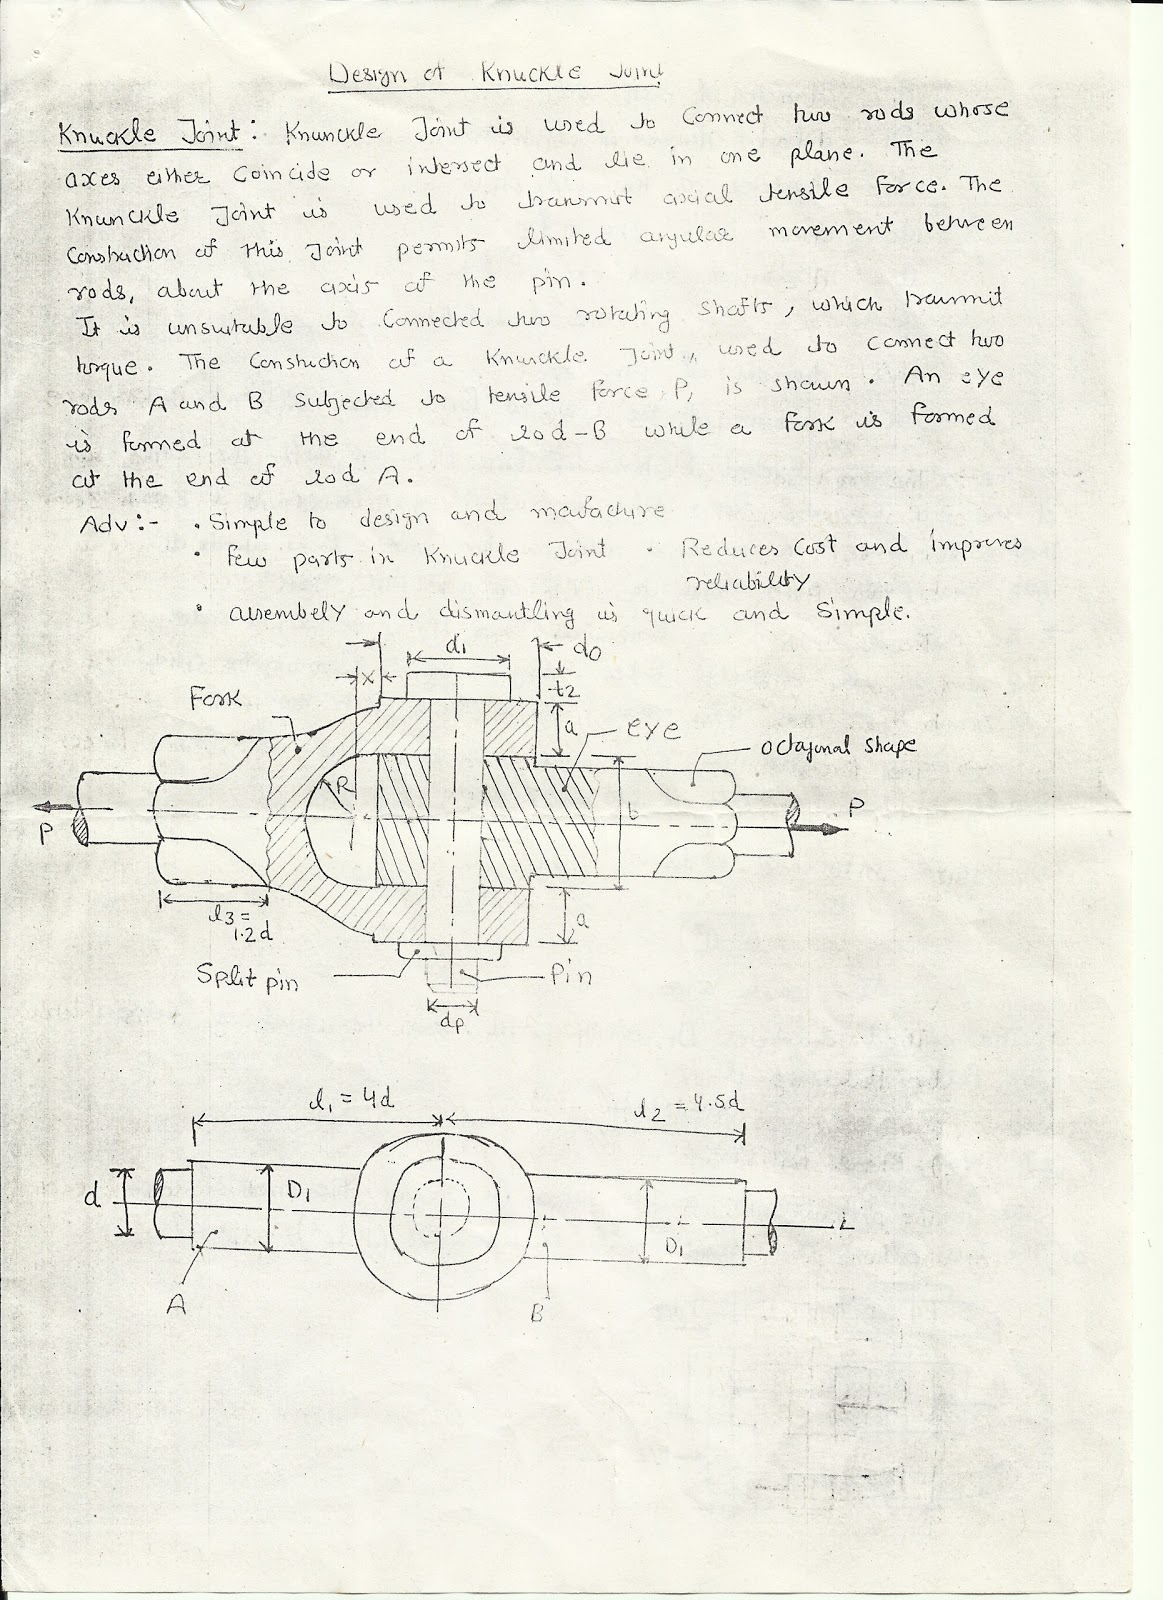 automobile   mechanical engg   design of knuckle joint